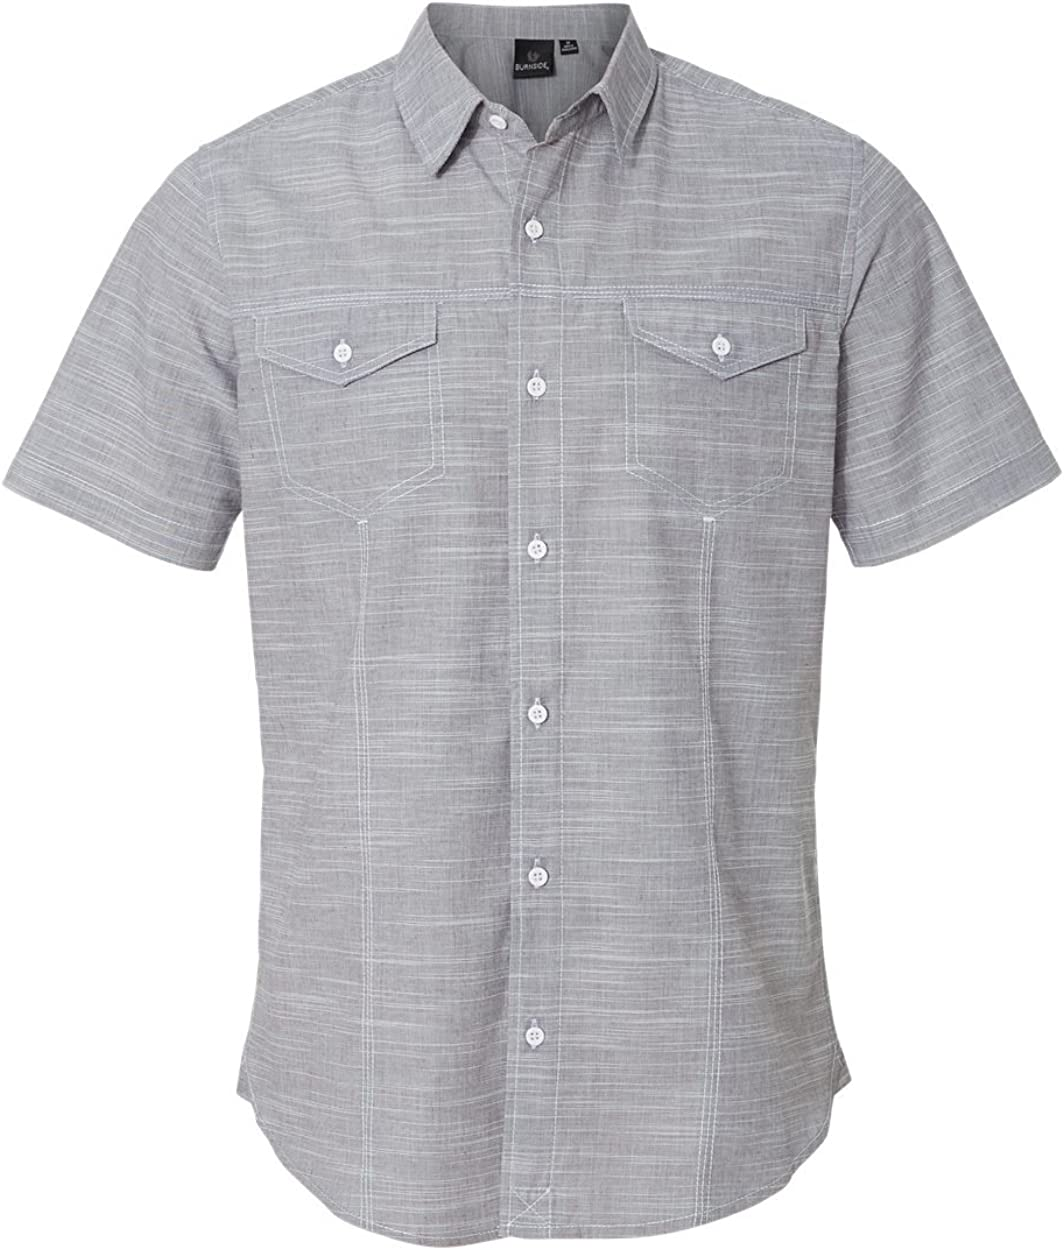 Burnside Textured Solid Short Sleeve Shirt (B9247)